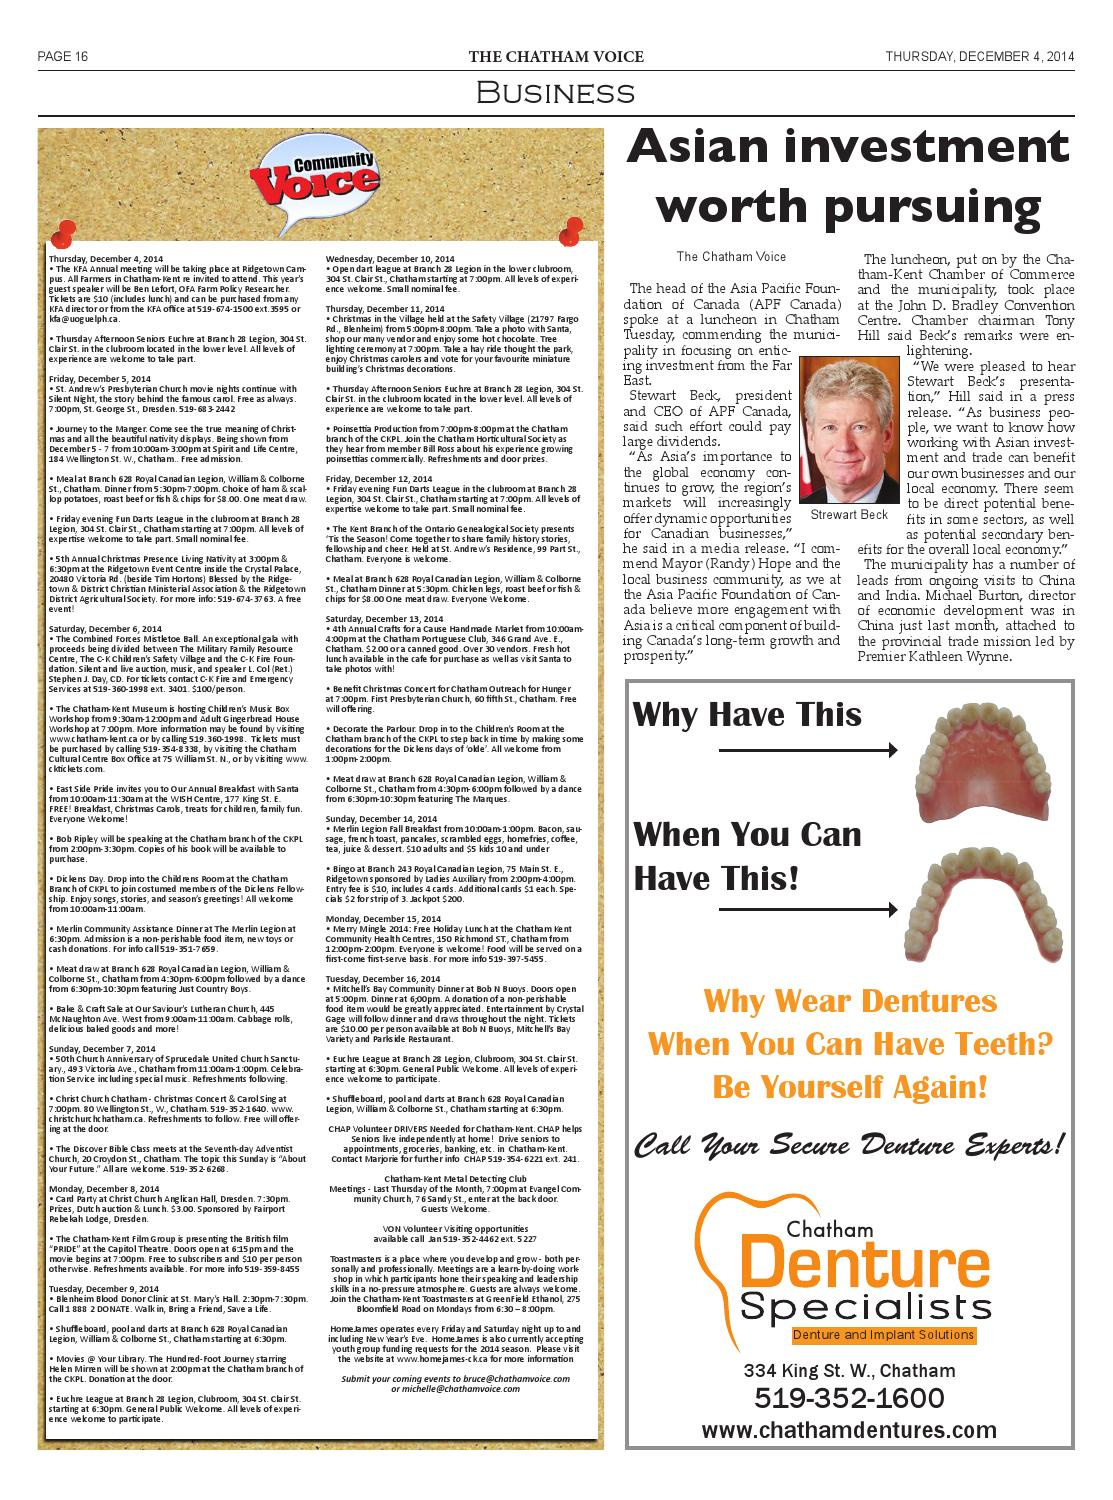 The Chatham Voice, Dec. 4, 2014 by Chatham Voice - issuu